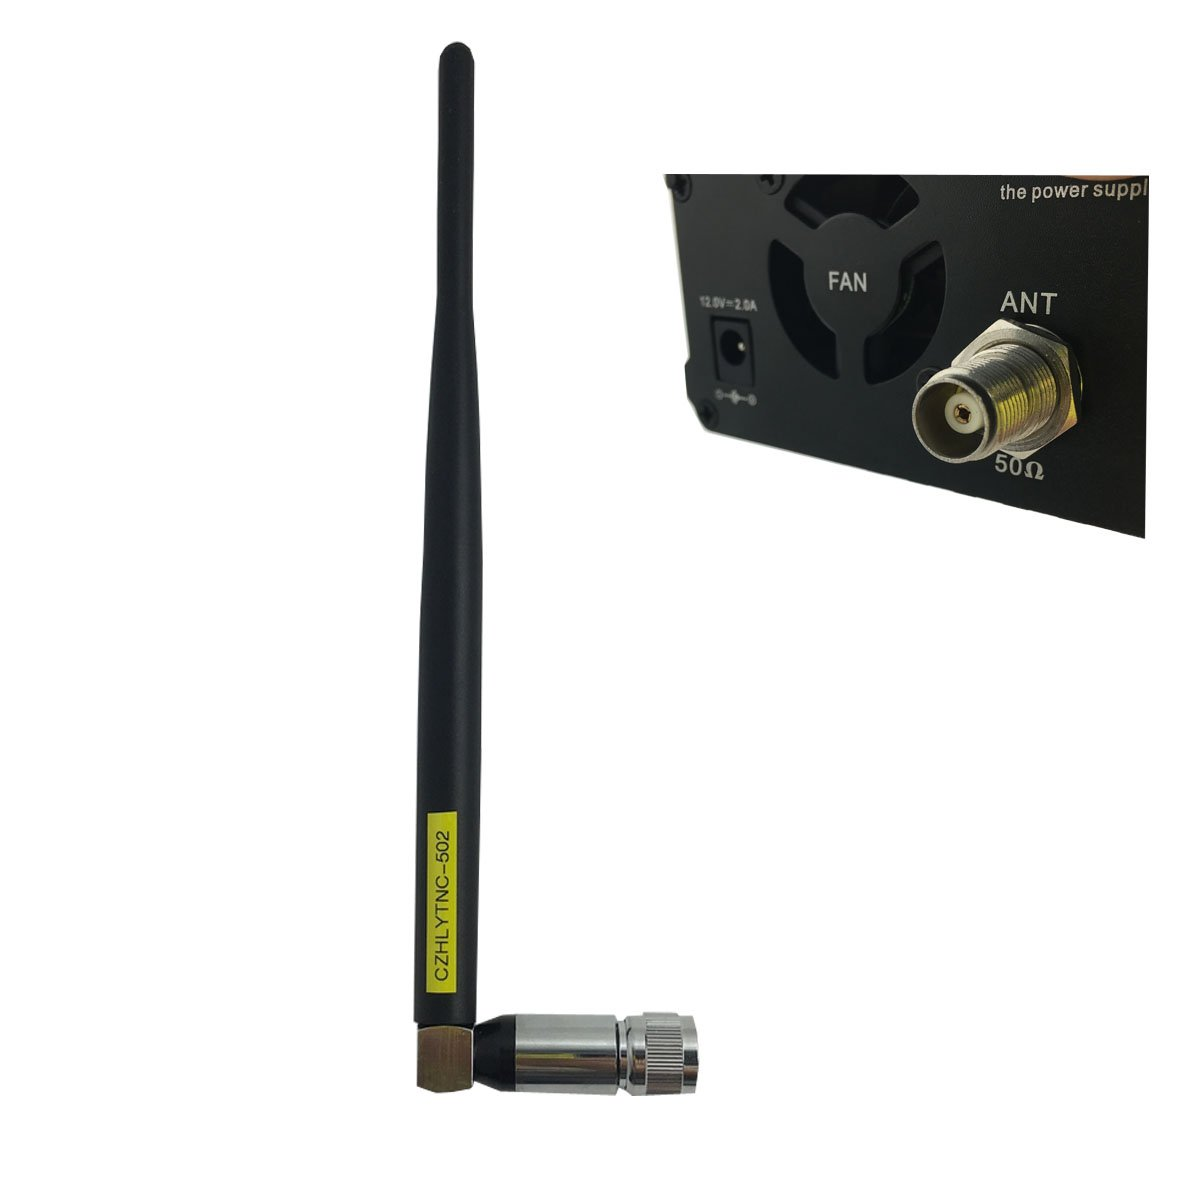 CZH 0.5W CZH-05B/CZE-05B Wireless Long Range Stereo Broadcast FM Transmitter Dual Mode Tnc Antenna Kit by CZH